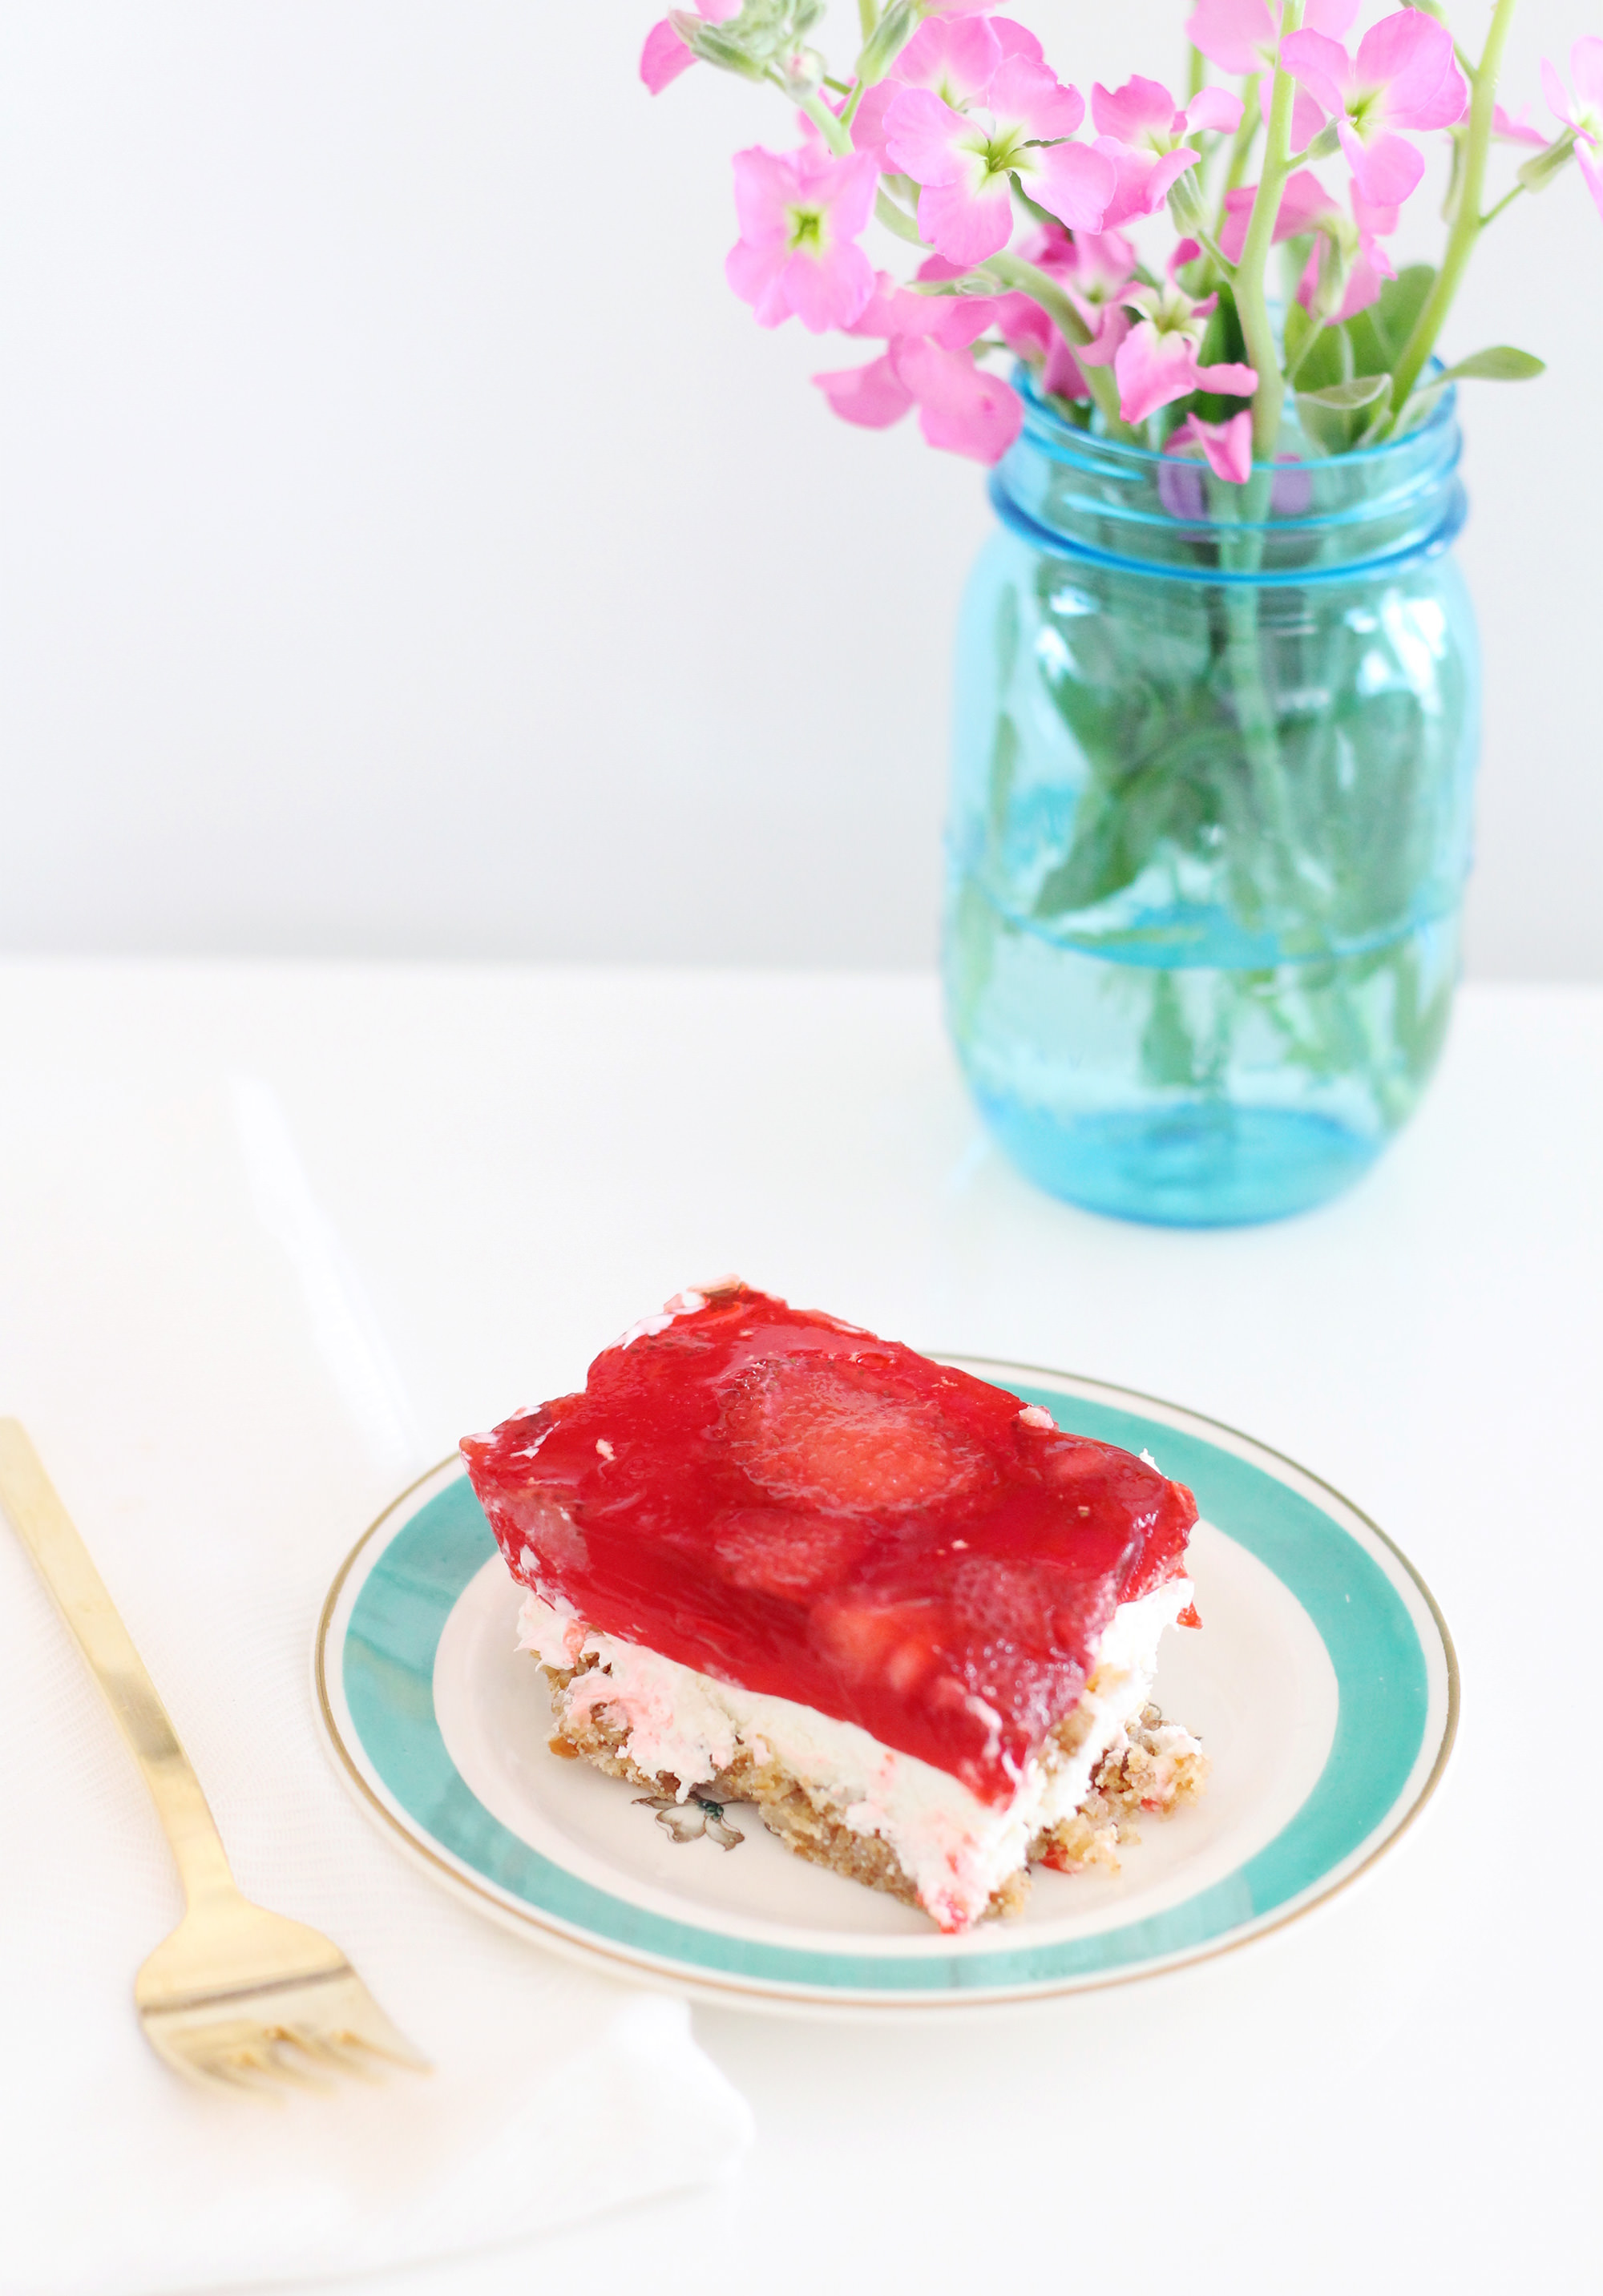 Strawberry Pretzel dessert is a crowd pleaser for summer picnics